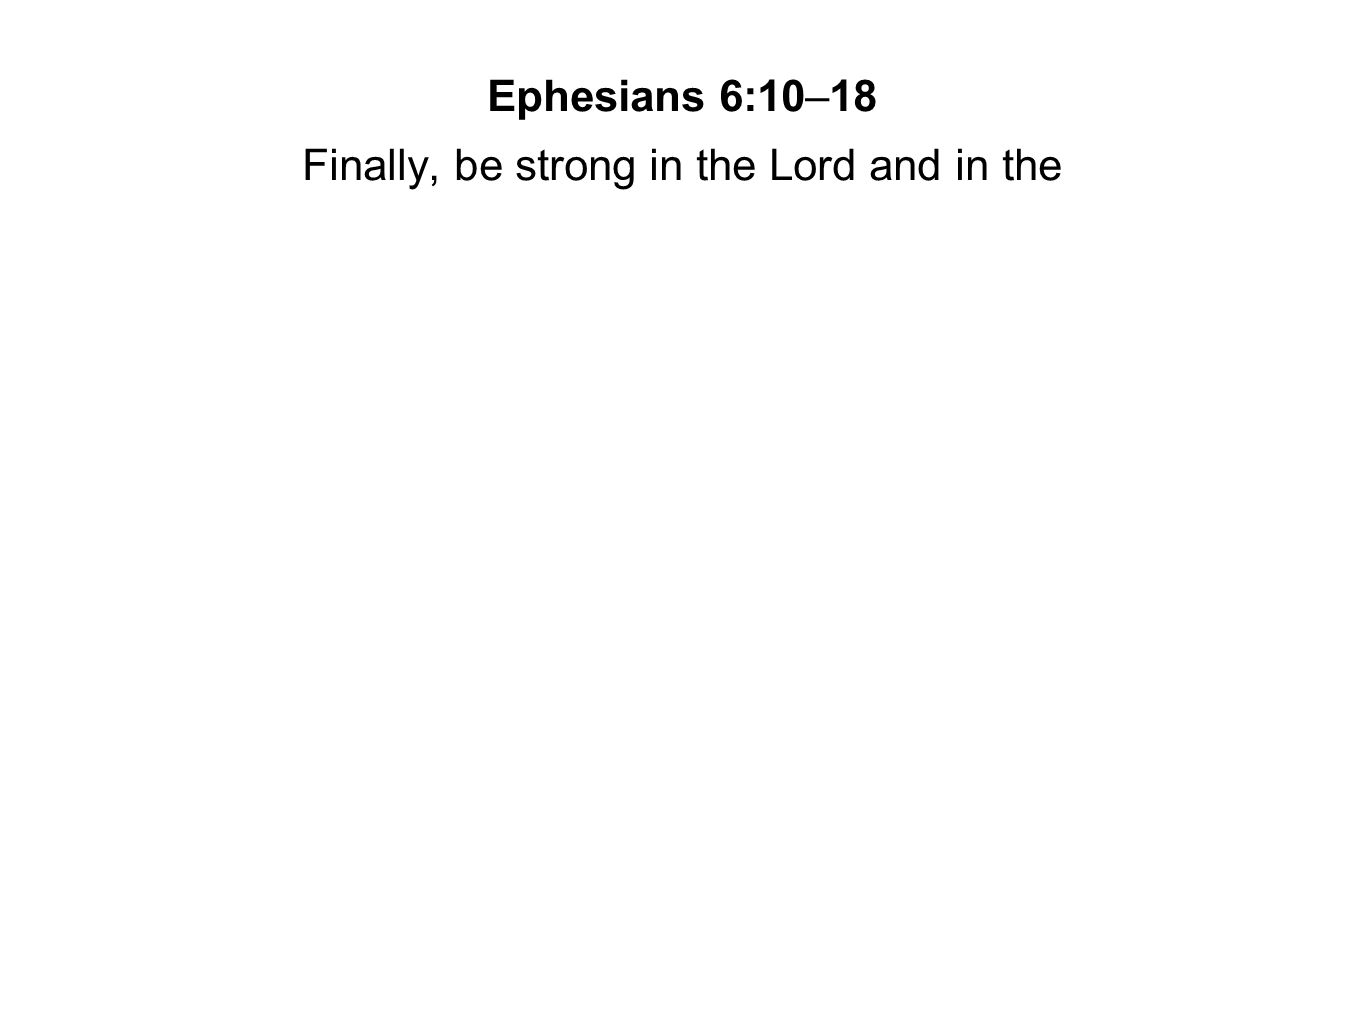 Finally, be strong in the Lord and in the